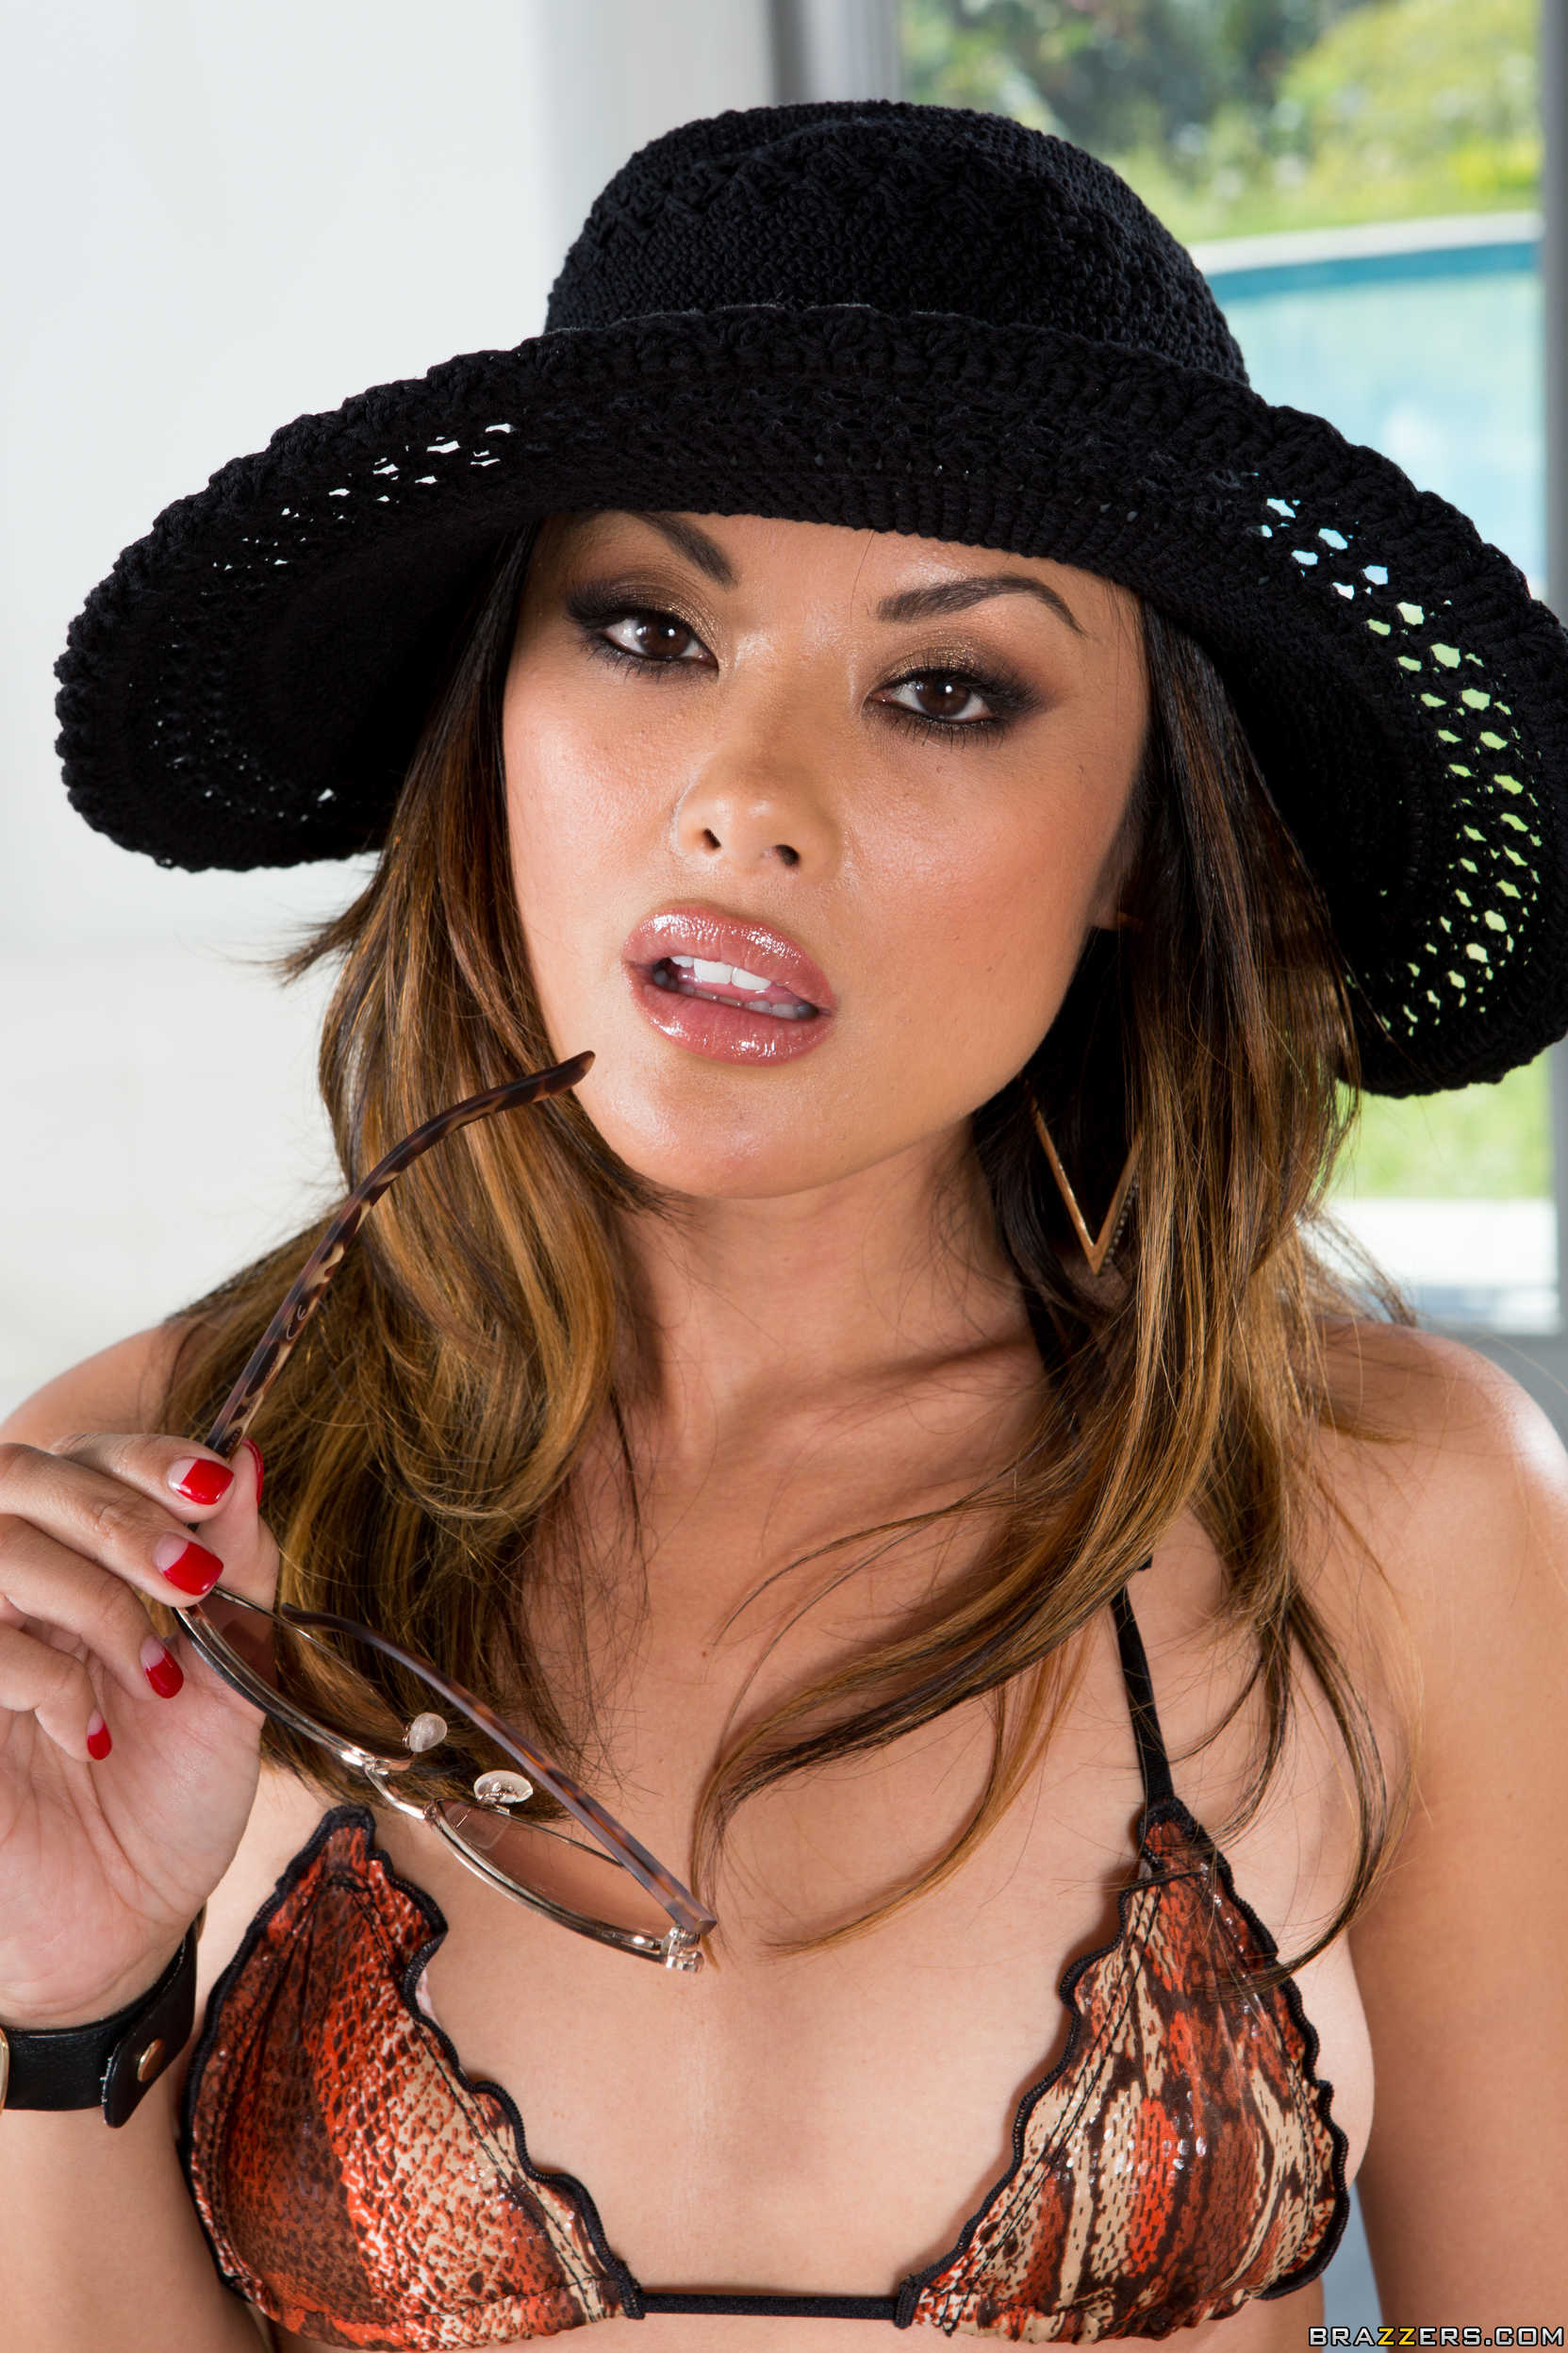 Fucking hot kay lanilei pornstar pussy Disappointinly